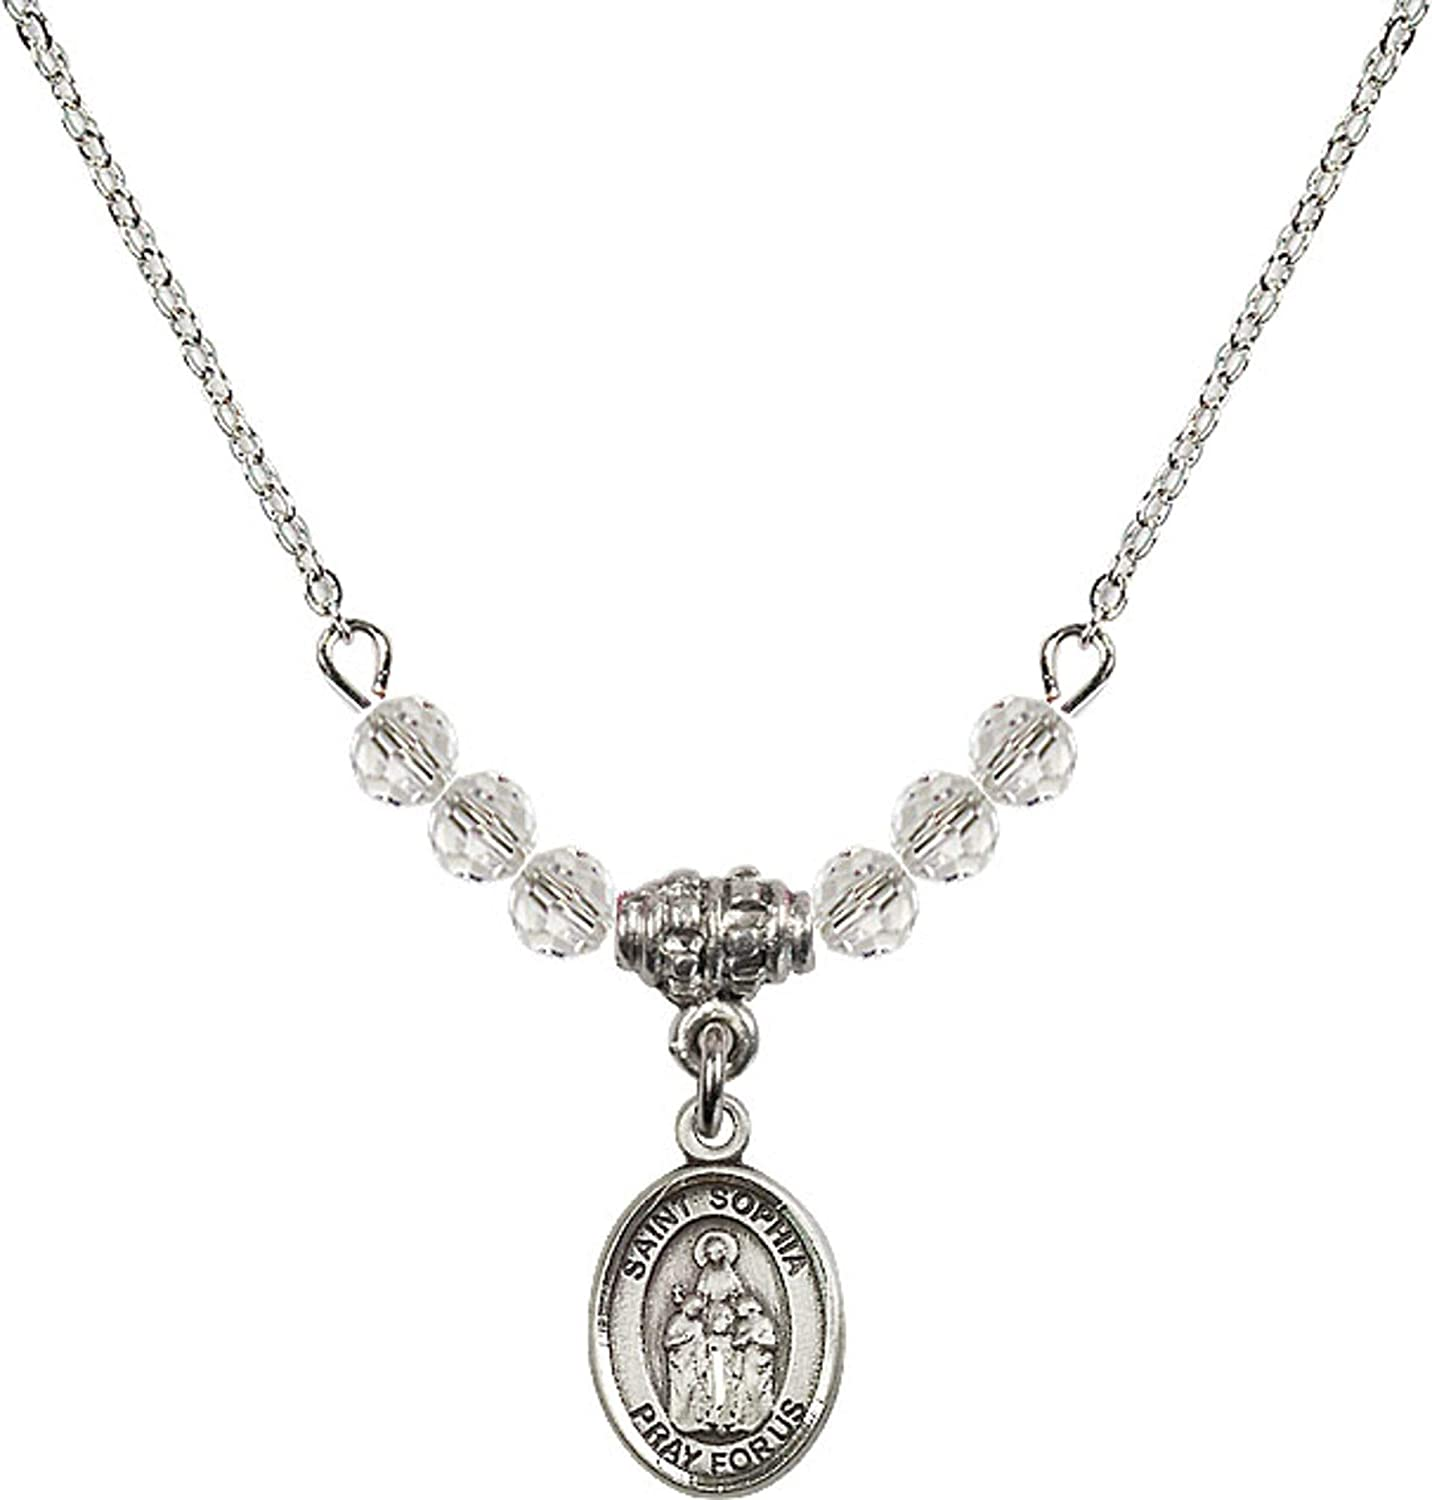 Bonyak Jewelry 18 Inch Rhodium Plated Necklace w// 4mm White April Birth Month Stone Beads and Saint Sophia Charm